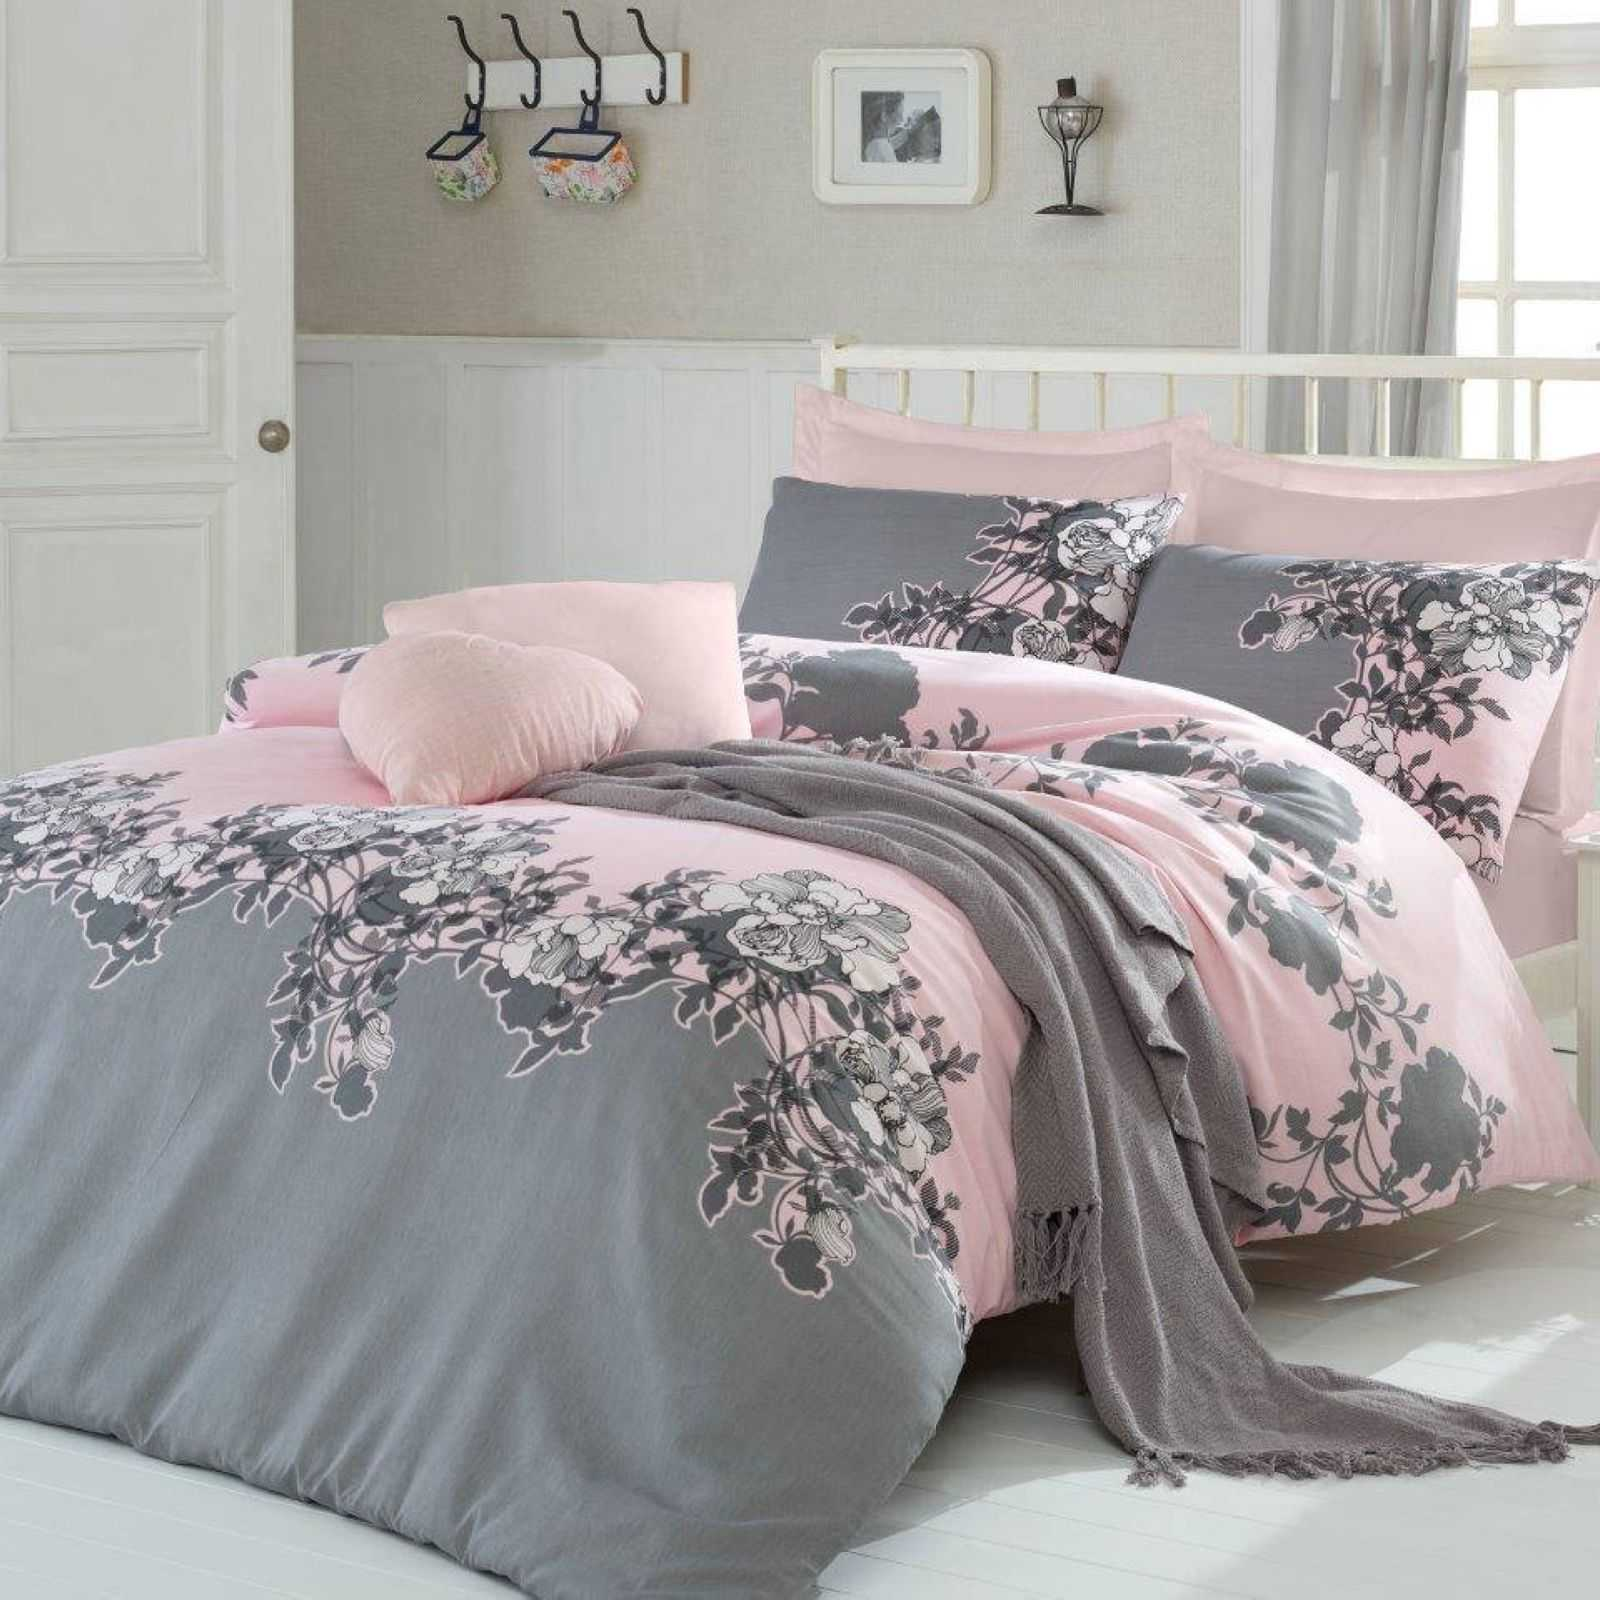 hobby rodez parure de lit gris rose brandalley. Black Bedroom Furniture Sets. Home Design Ideas